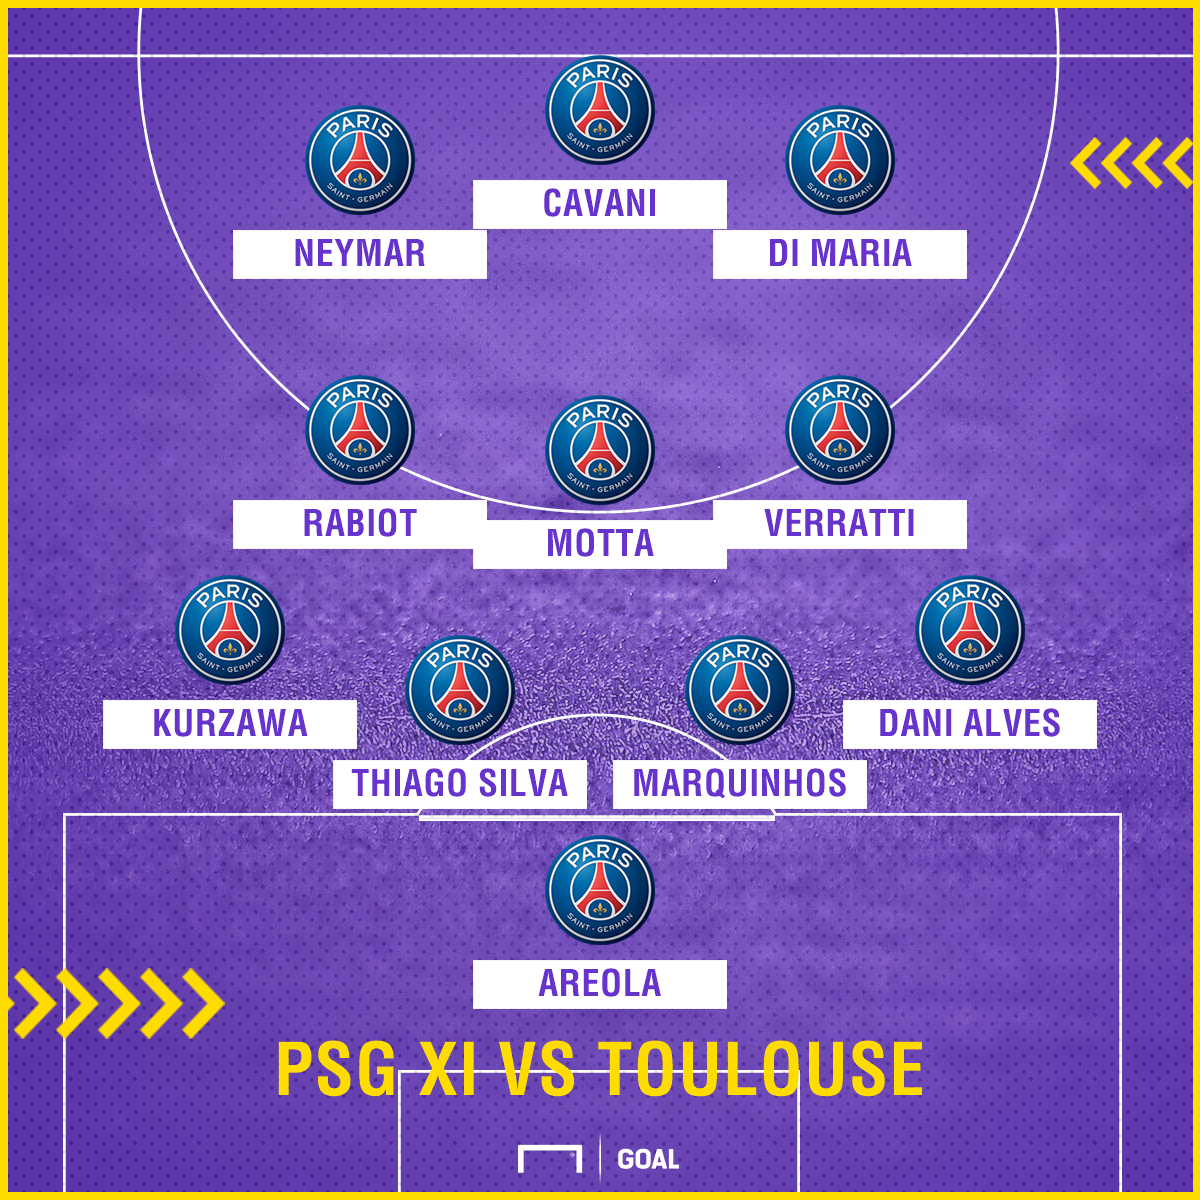 PSG with Neymar vs Toulouse